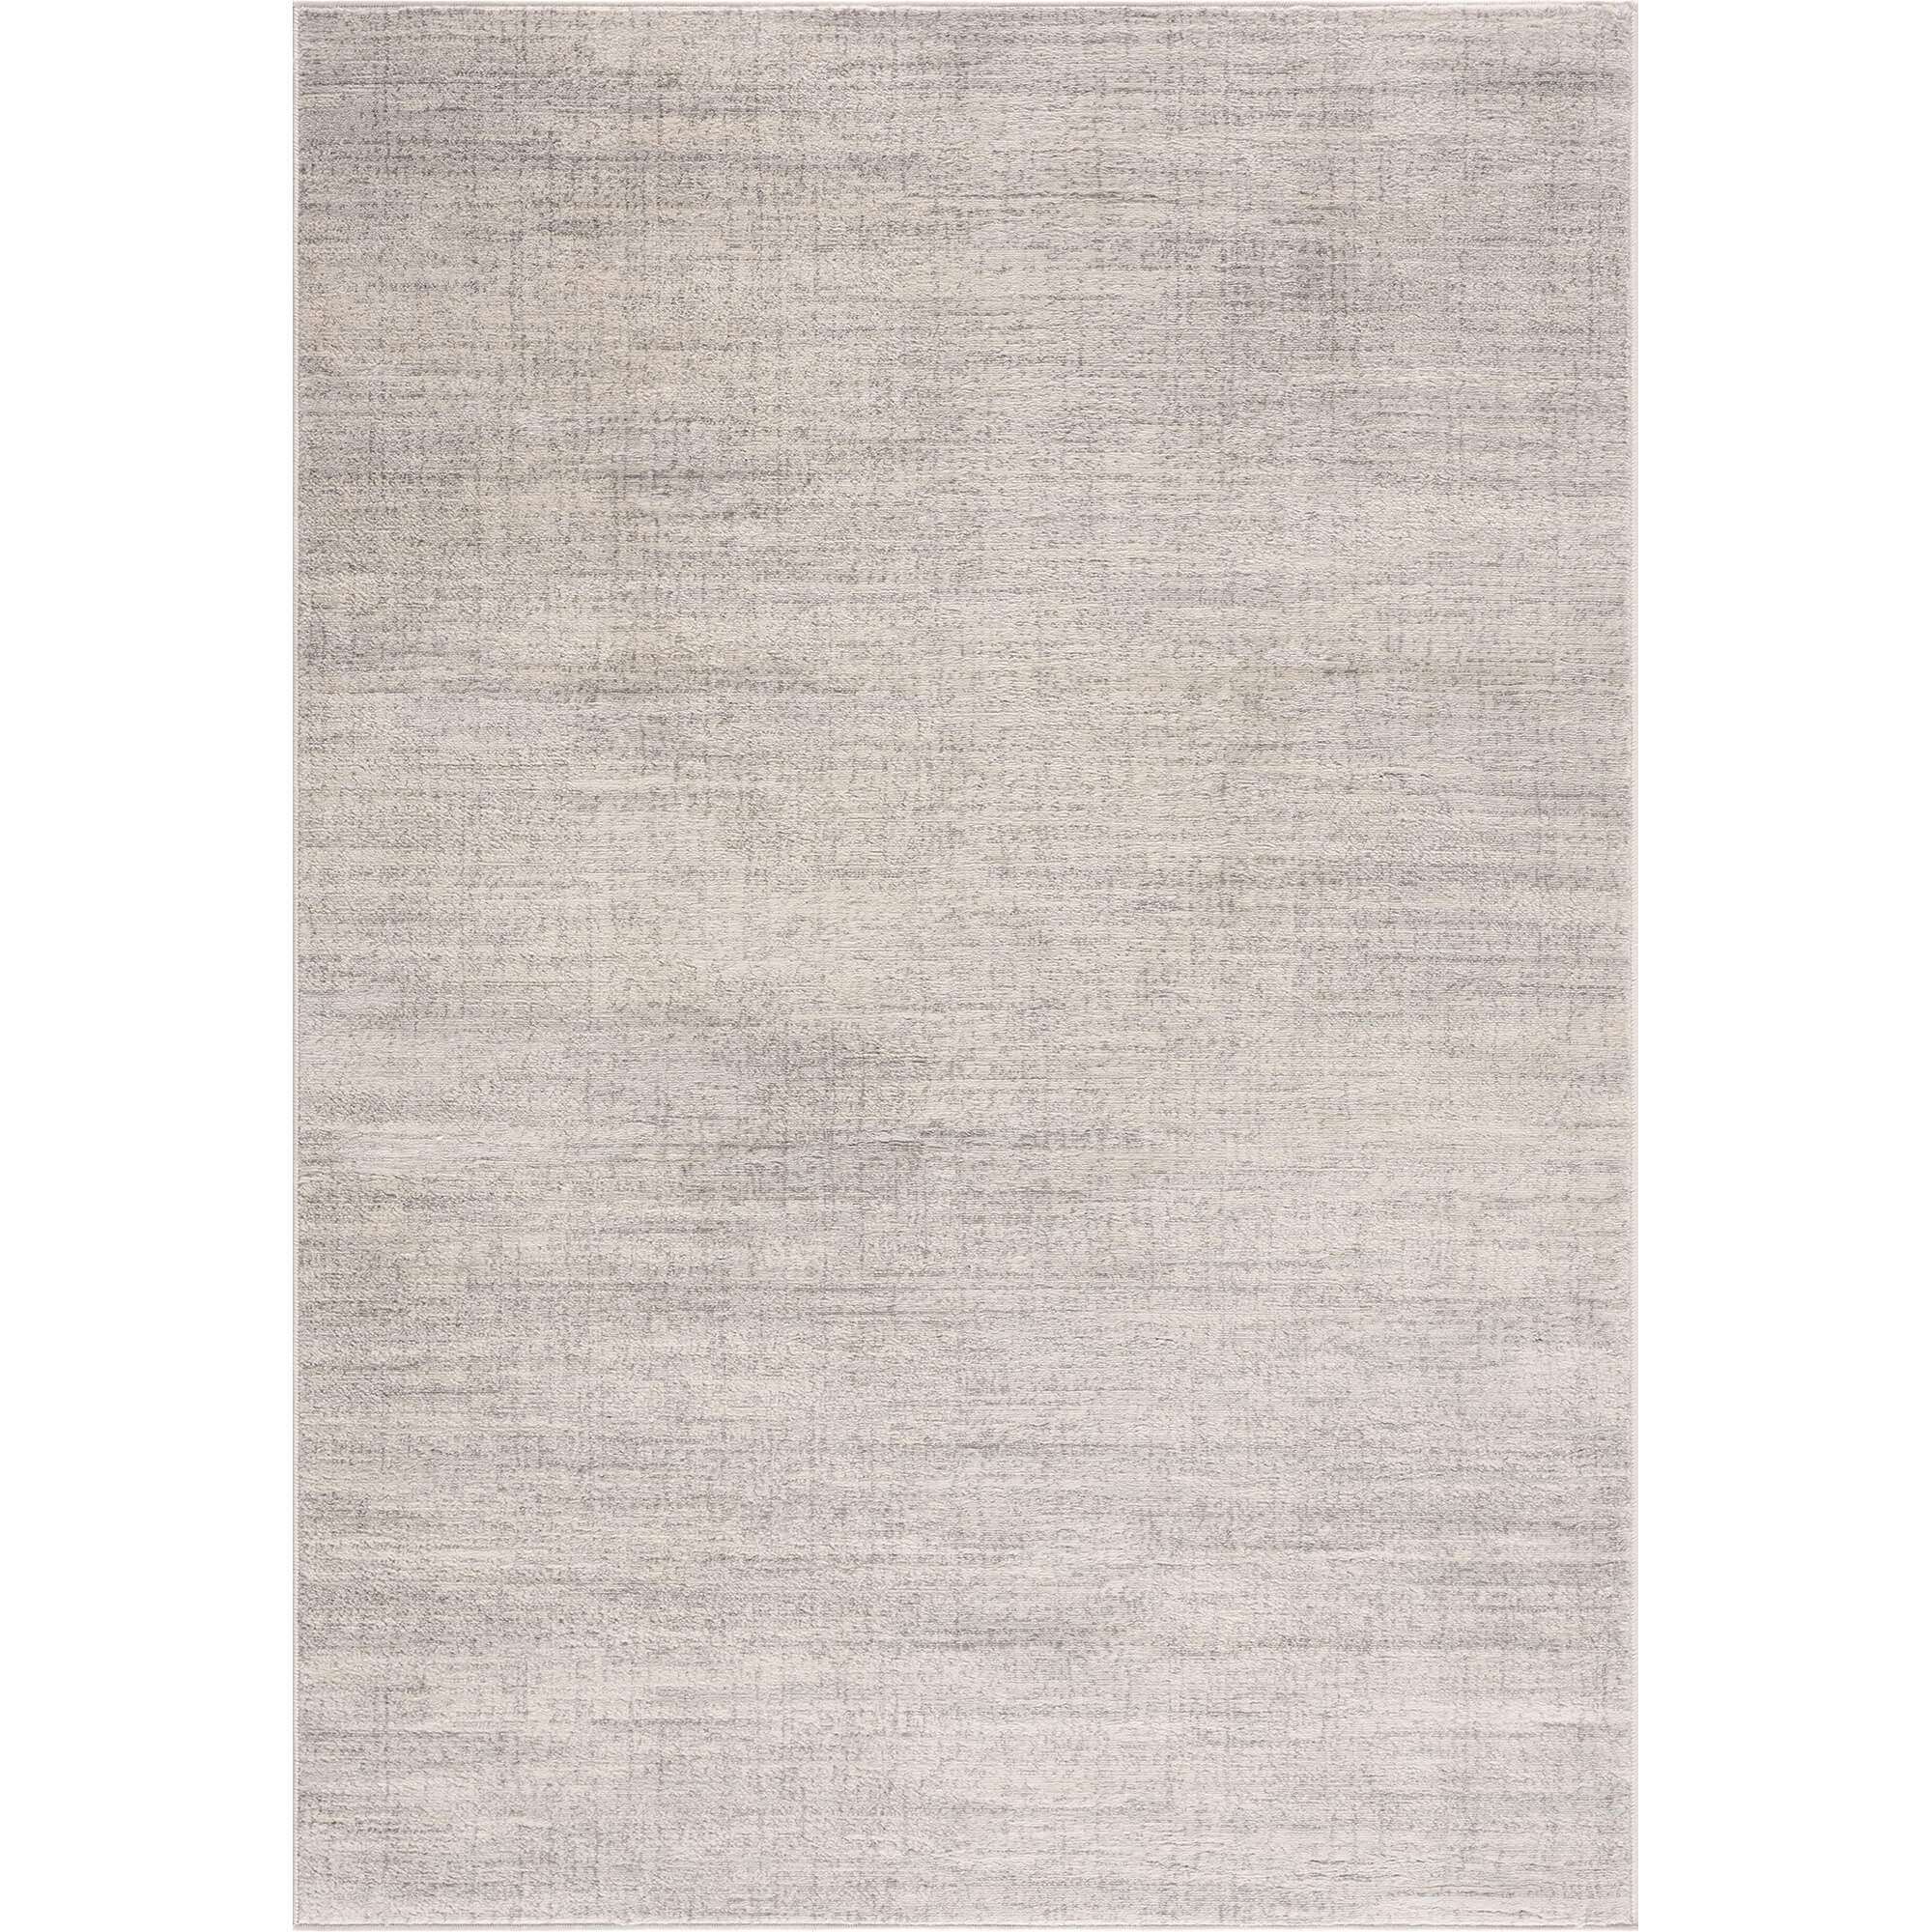 Cream and Grey Living Room Rug | 3800